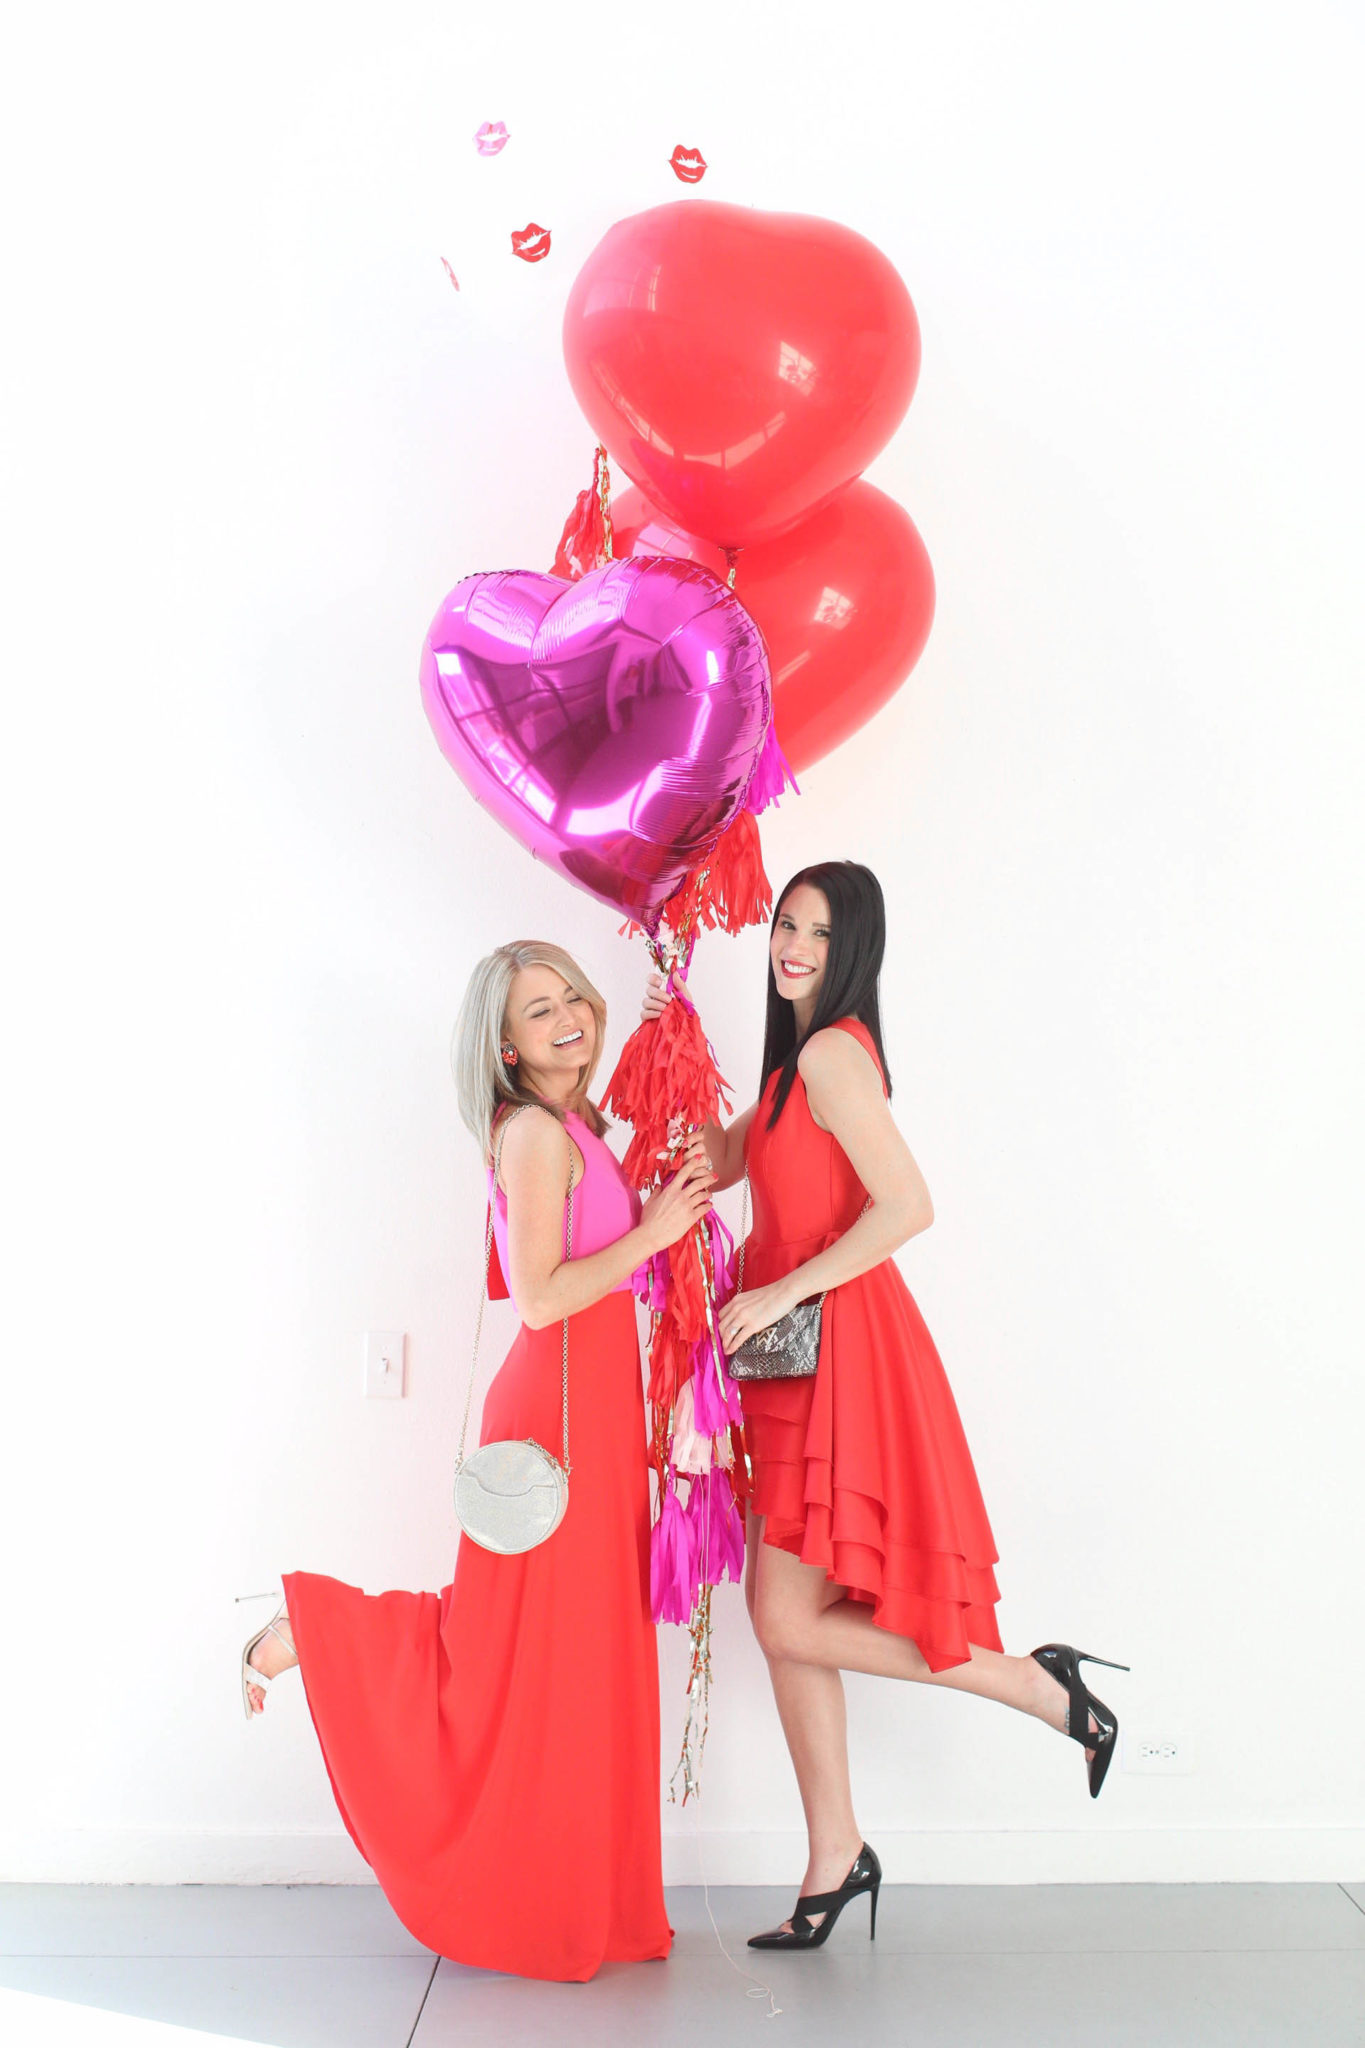 12 Must Have Little Red Dresses for Galentine's Day | classy red dresses | red dress outfit | valentine's day outfit | Valentine's Day dress || Dressed to Kill #reddress #valentinedress #valentineoutfit | Little Red Dresses for Galentine's Day featured by top US fashion blog, Dressed to Kill: image of 2 women holding balloons and wearing a Jill Jill Stuart red dress, Kelly Wynne bag and Steve Madden shoes for the first women and a red Chiwish dress, Christian Louboutin shoes and Kelly Wynne bag on the other woman.